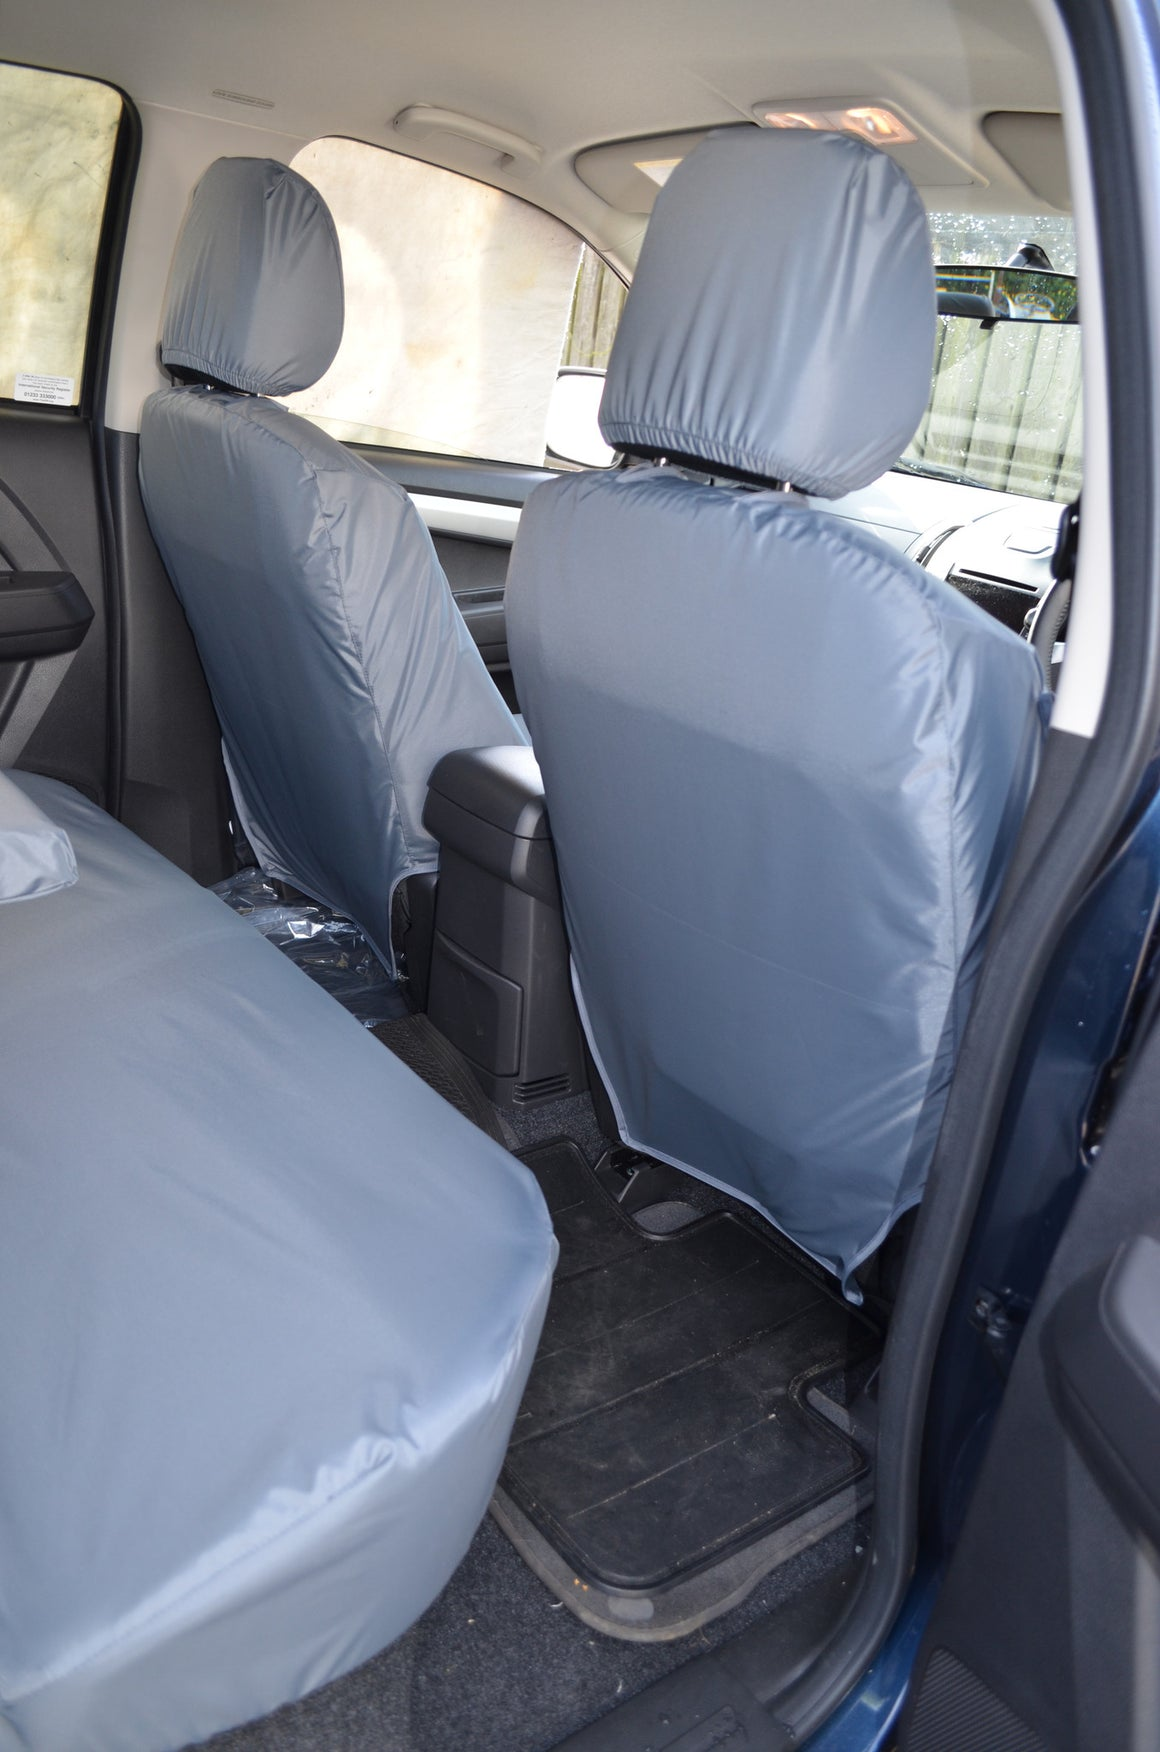 Isuzu D-Max 2012 Onwards Seat Covers  Turtle Covers Ltd